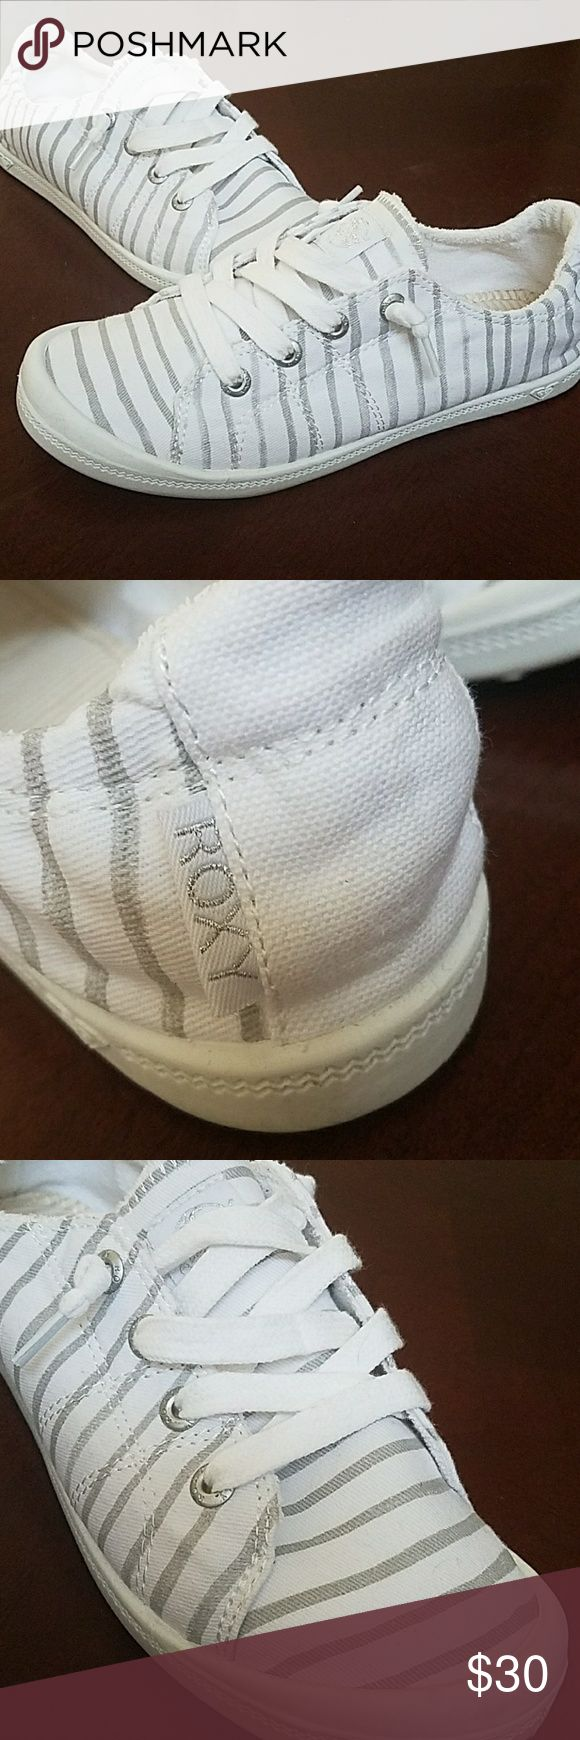 Slip on tennis shoes White with gray stripes soft Roxy tennis shoes. Soft terry cloth inside make these super comfy! Only worn once since they are just a little too small for me. Roxy Shoes Sneakers